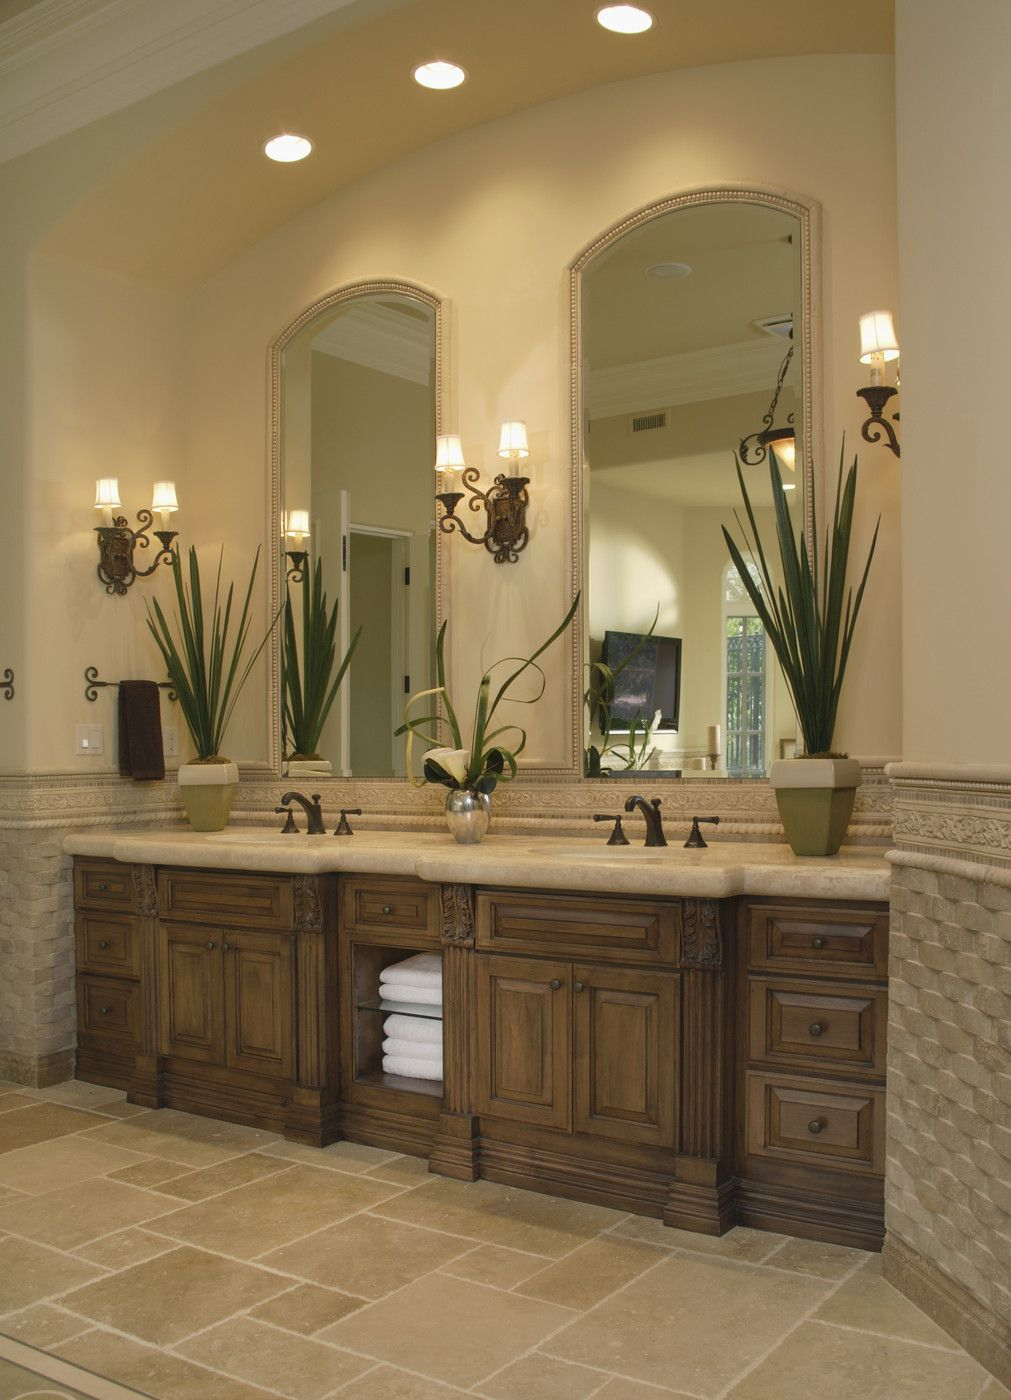 Bathroom Fixtures Lighting rise and shine! bathroom vanity lighting tips